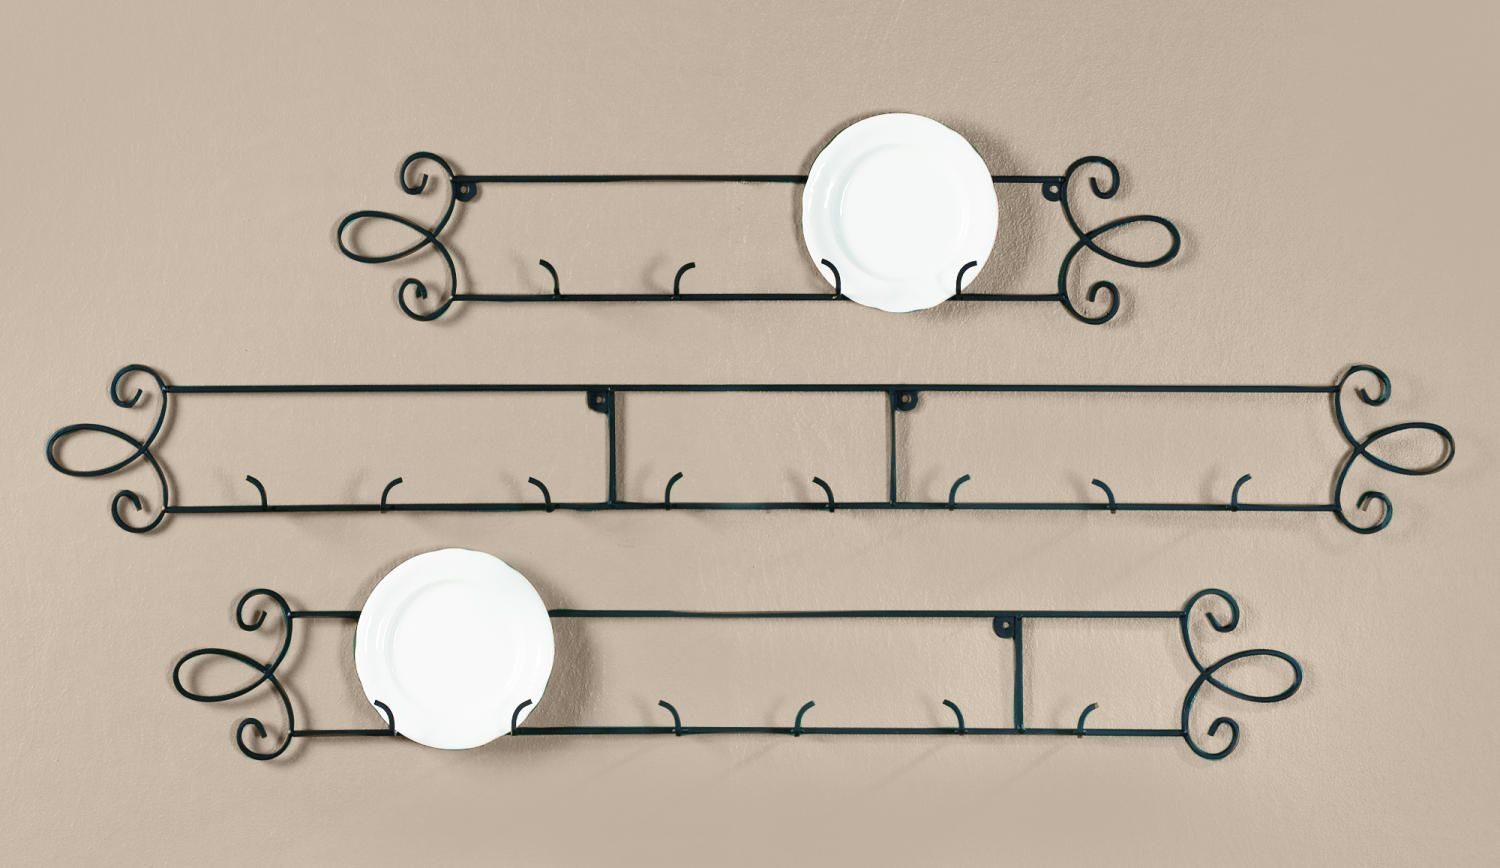 Augusta Black Horizontal Plate Racks (Plate Racks (Wall)) - I ordered one  sc 1 st  Pinterest : display holders for plates - pezcame.com